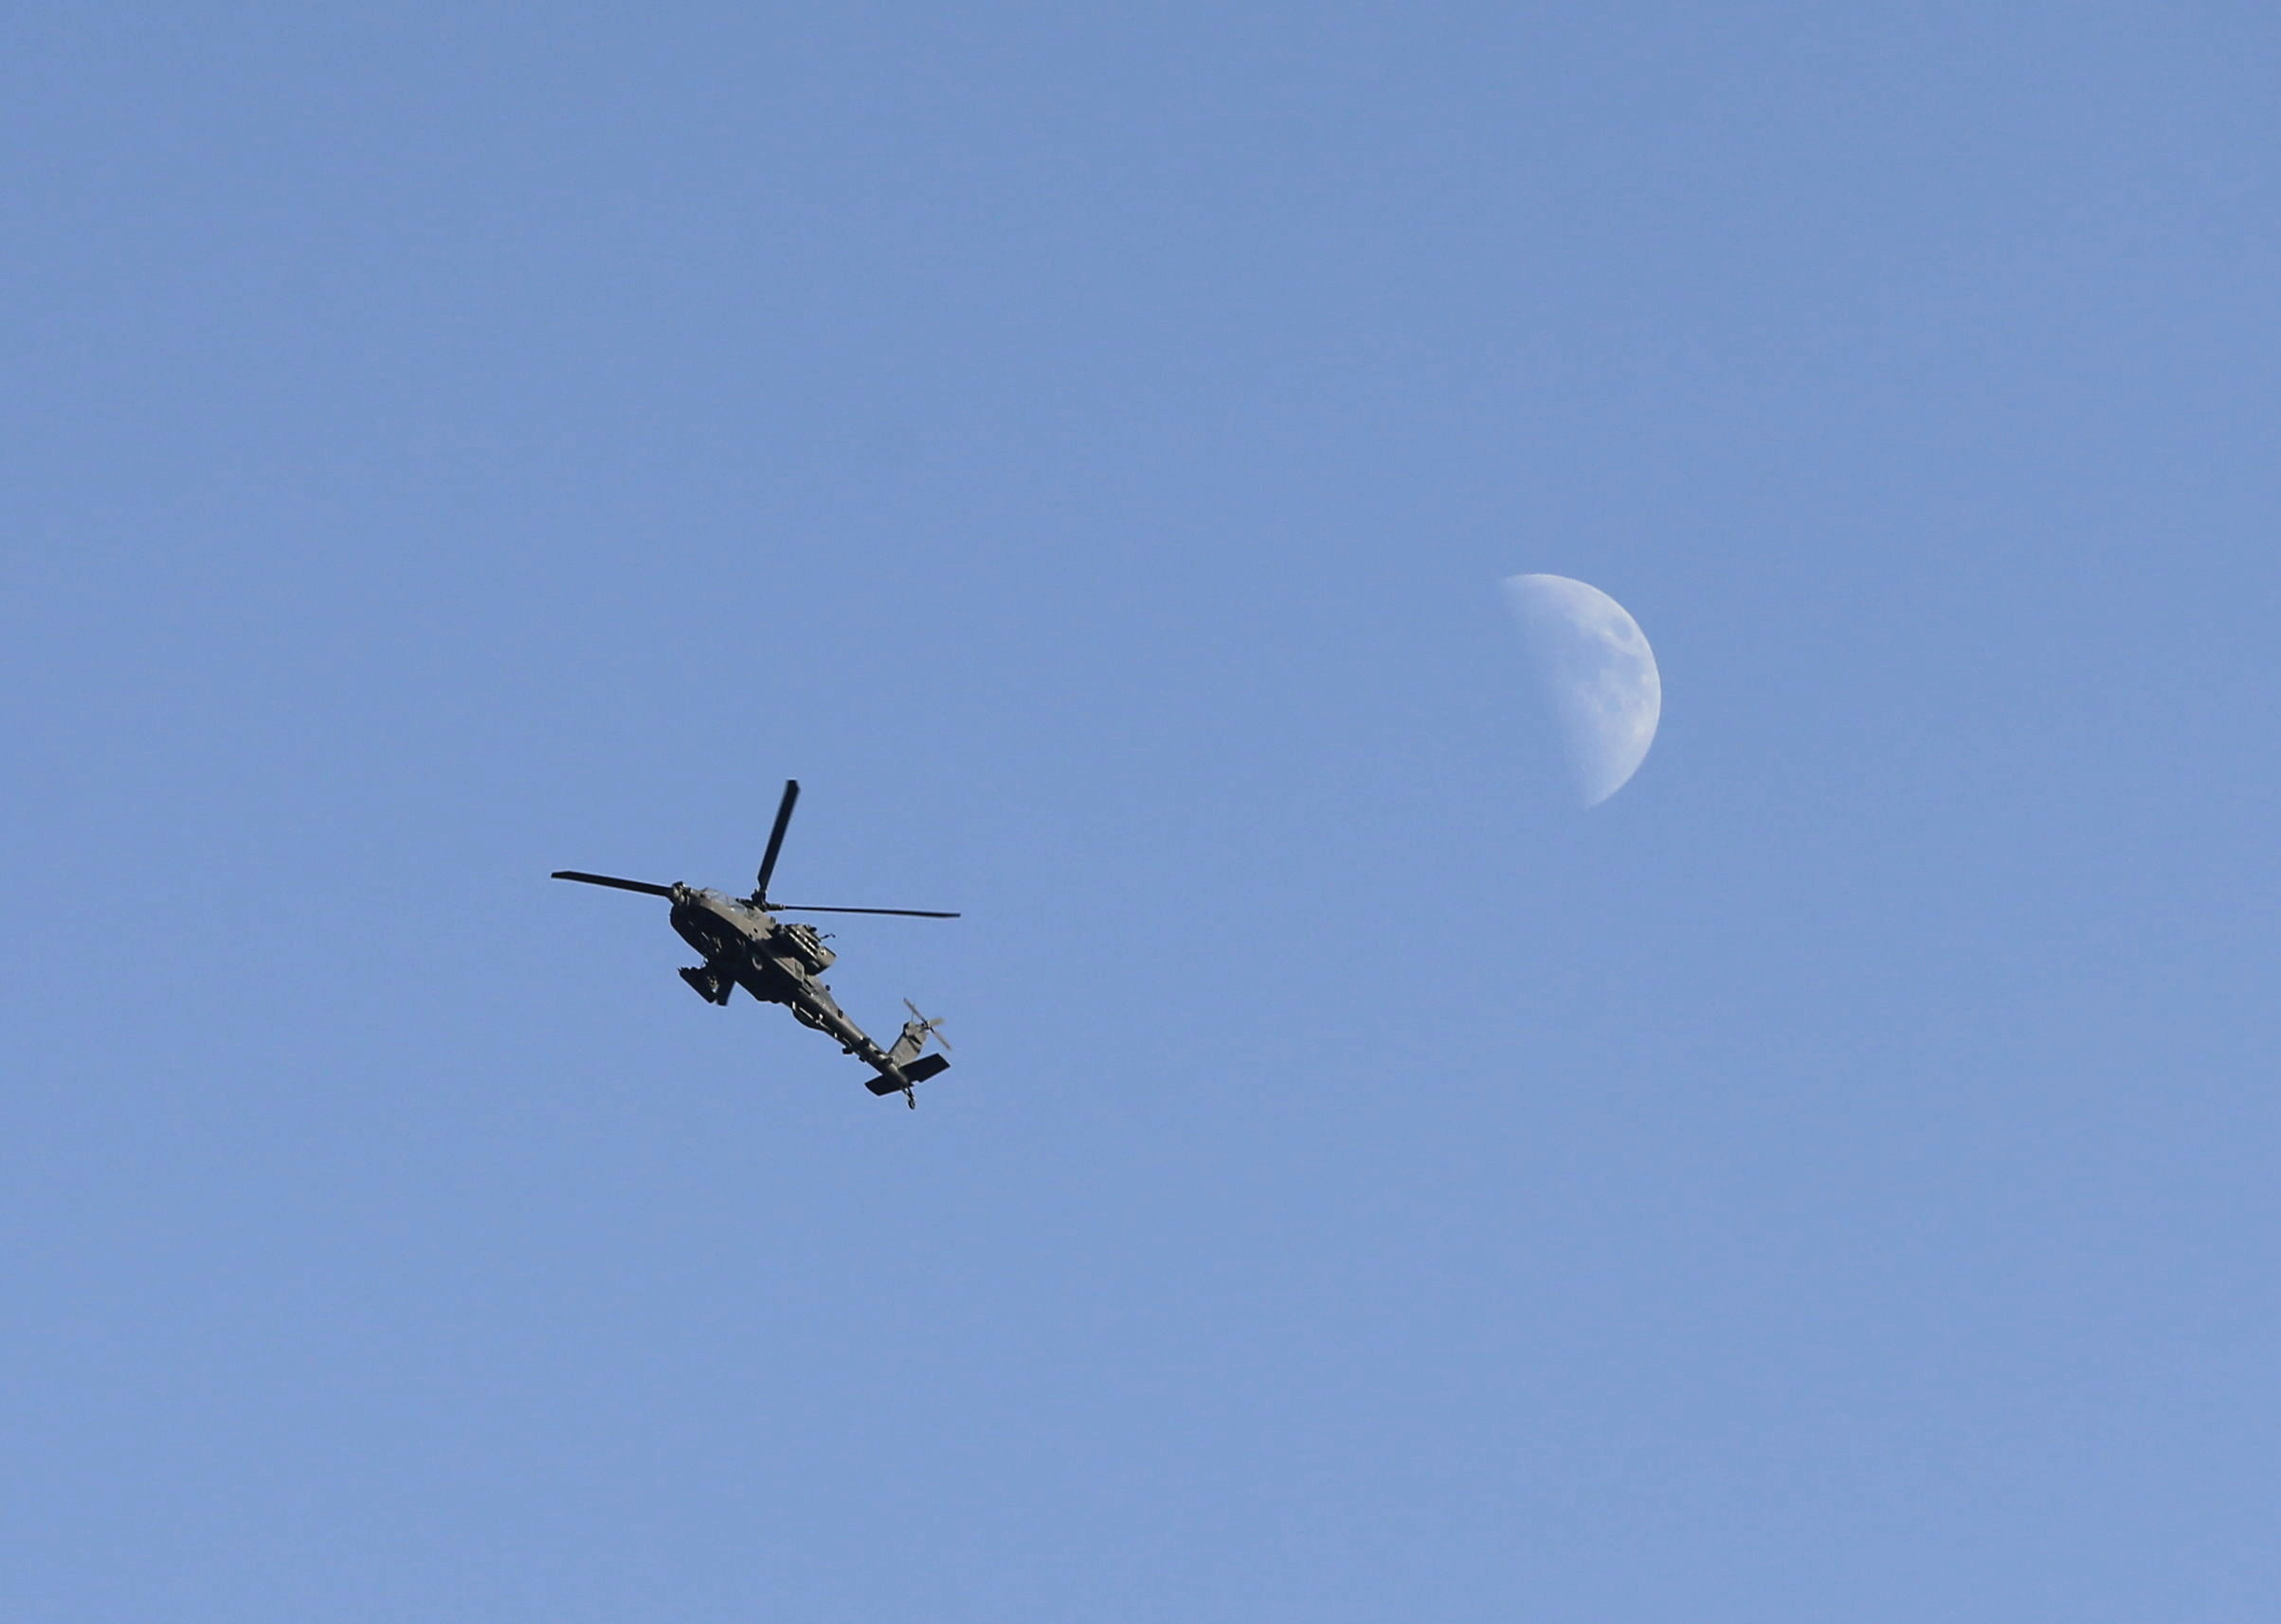 U.S. Army Apache helicopter flies over Kabul, Afghanistan August 15, 2021. REUTERS/Stringer